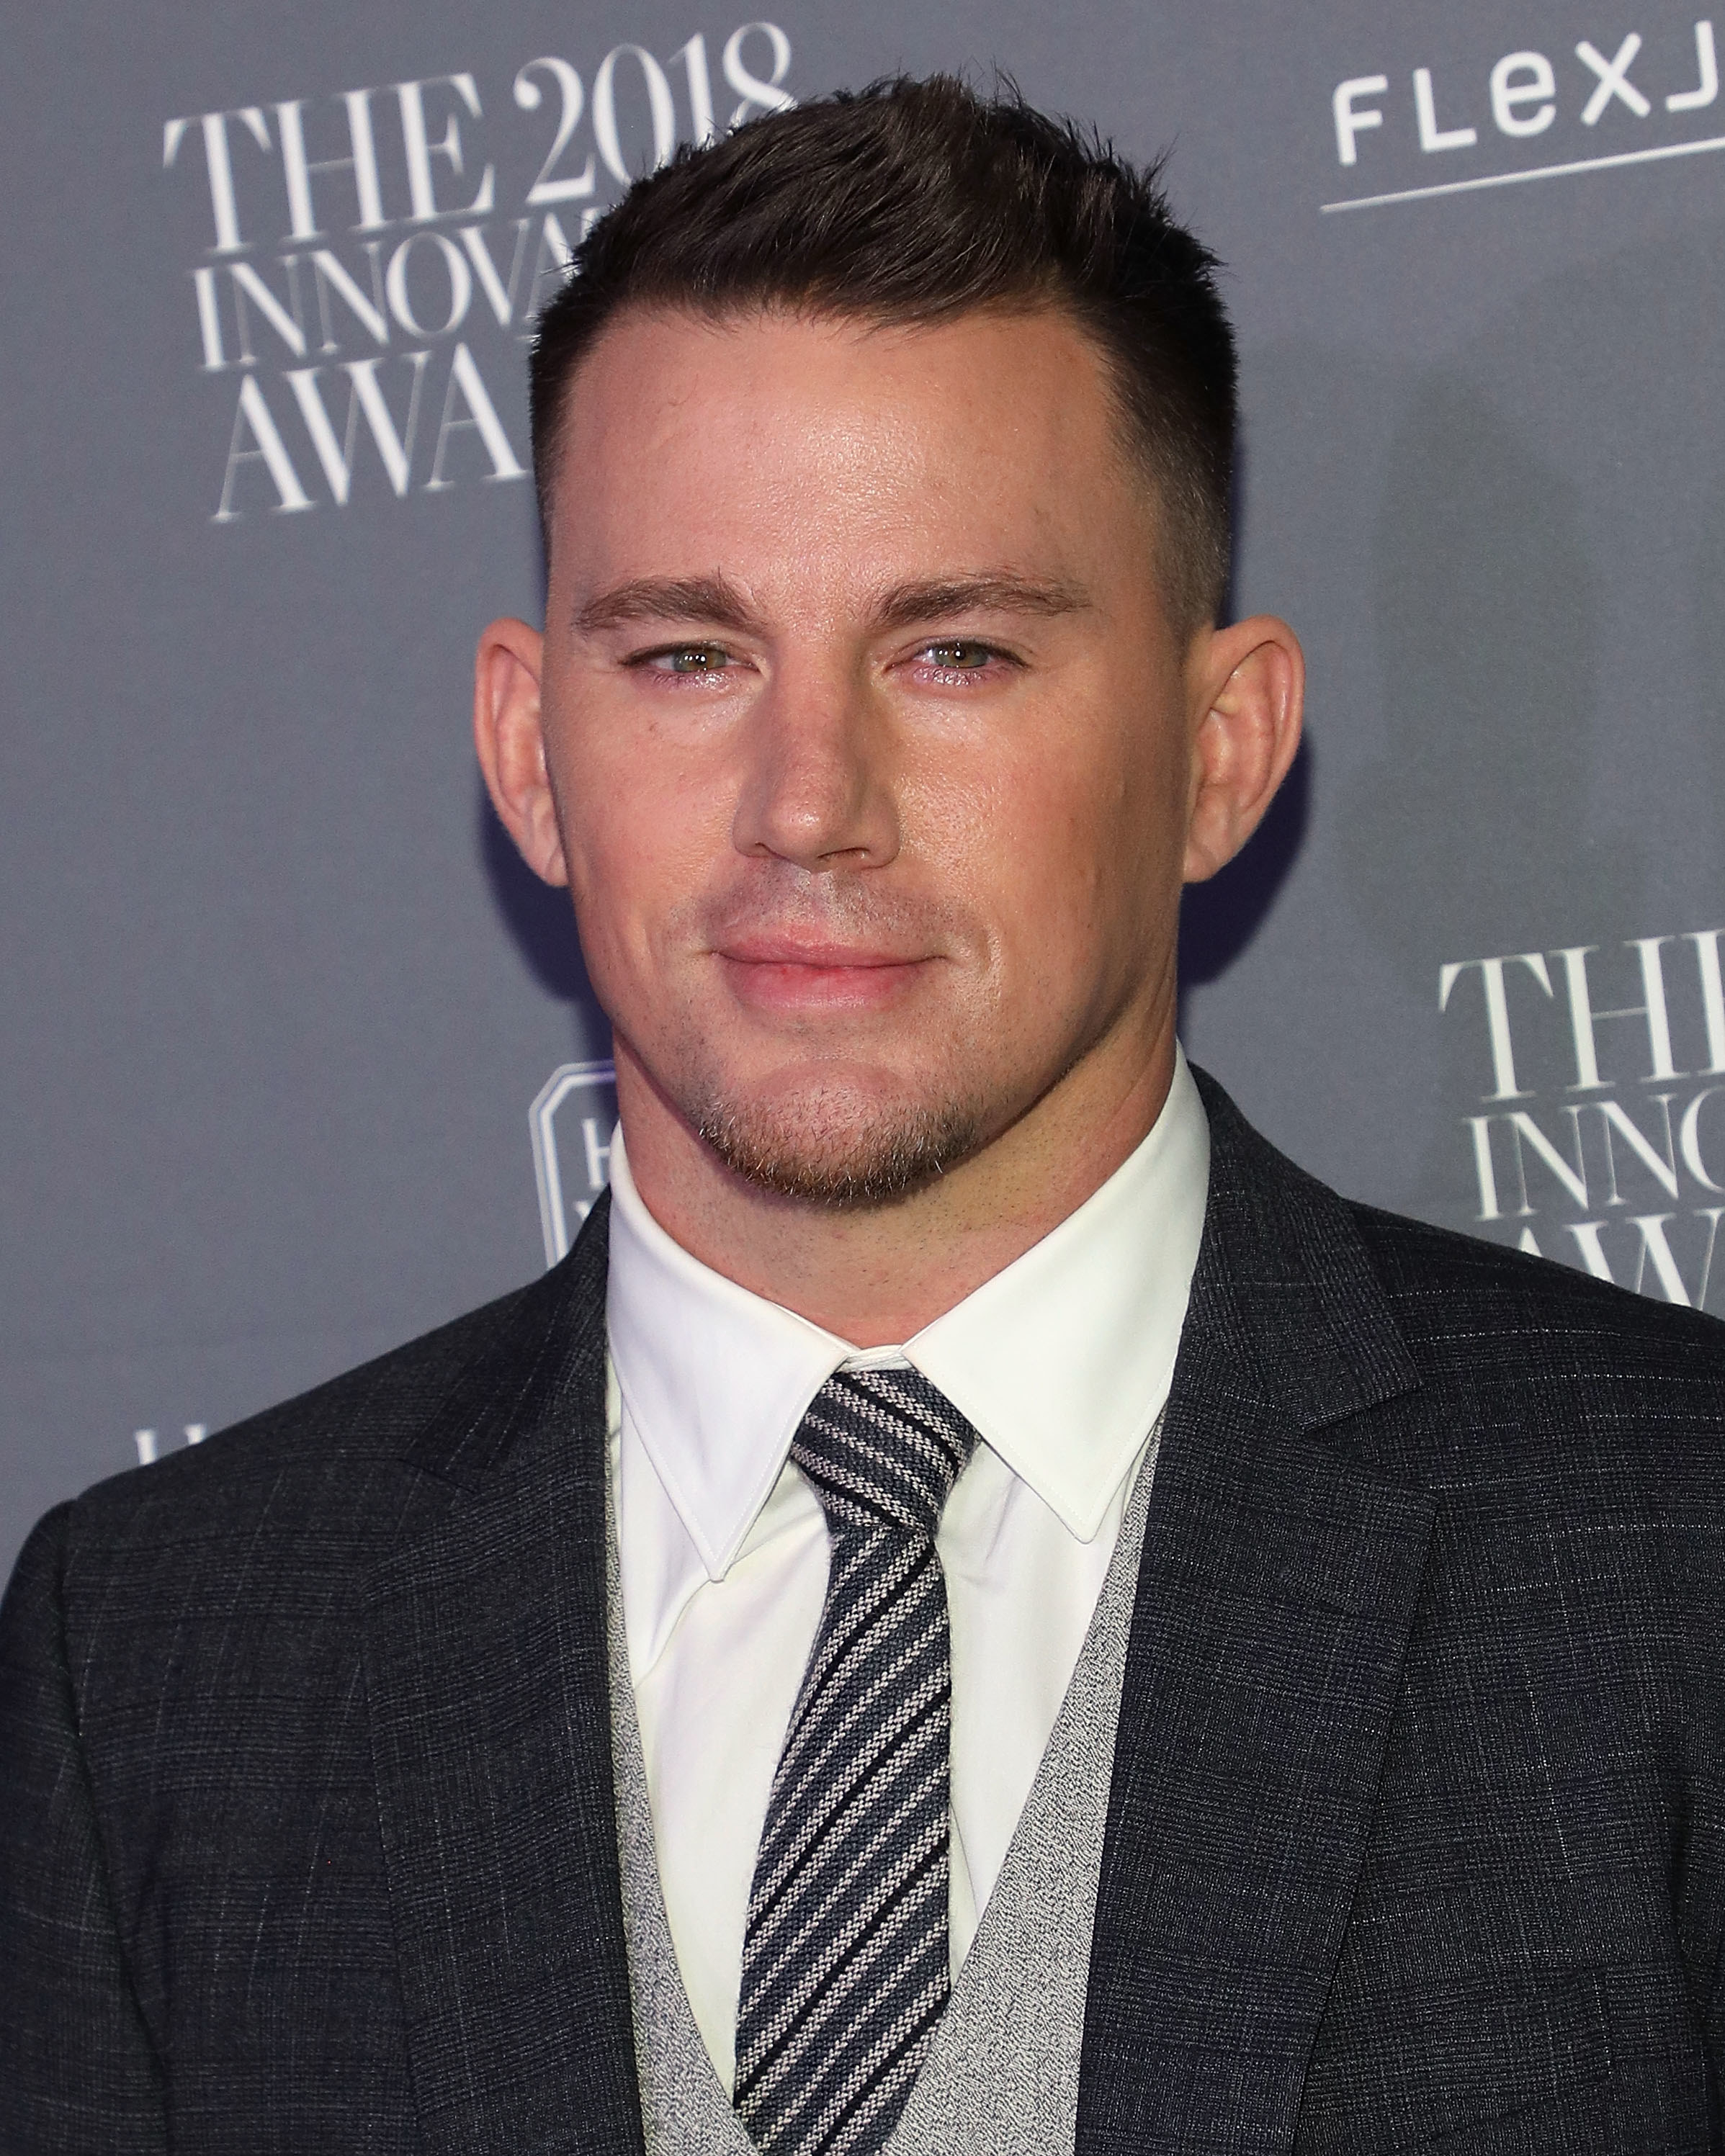 """Channing Tatum Explained Why He Felt """"A Lot Of Fear"""" About Parenting After His Divorce"""